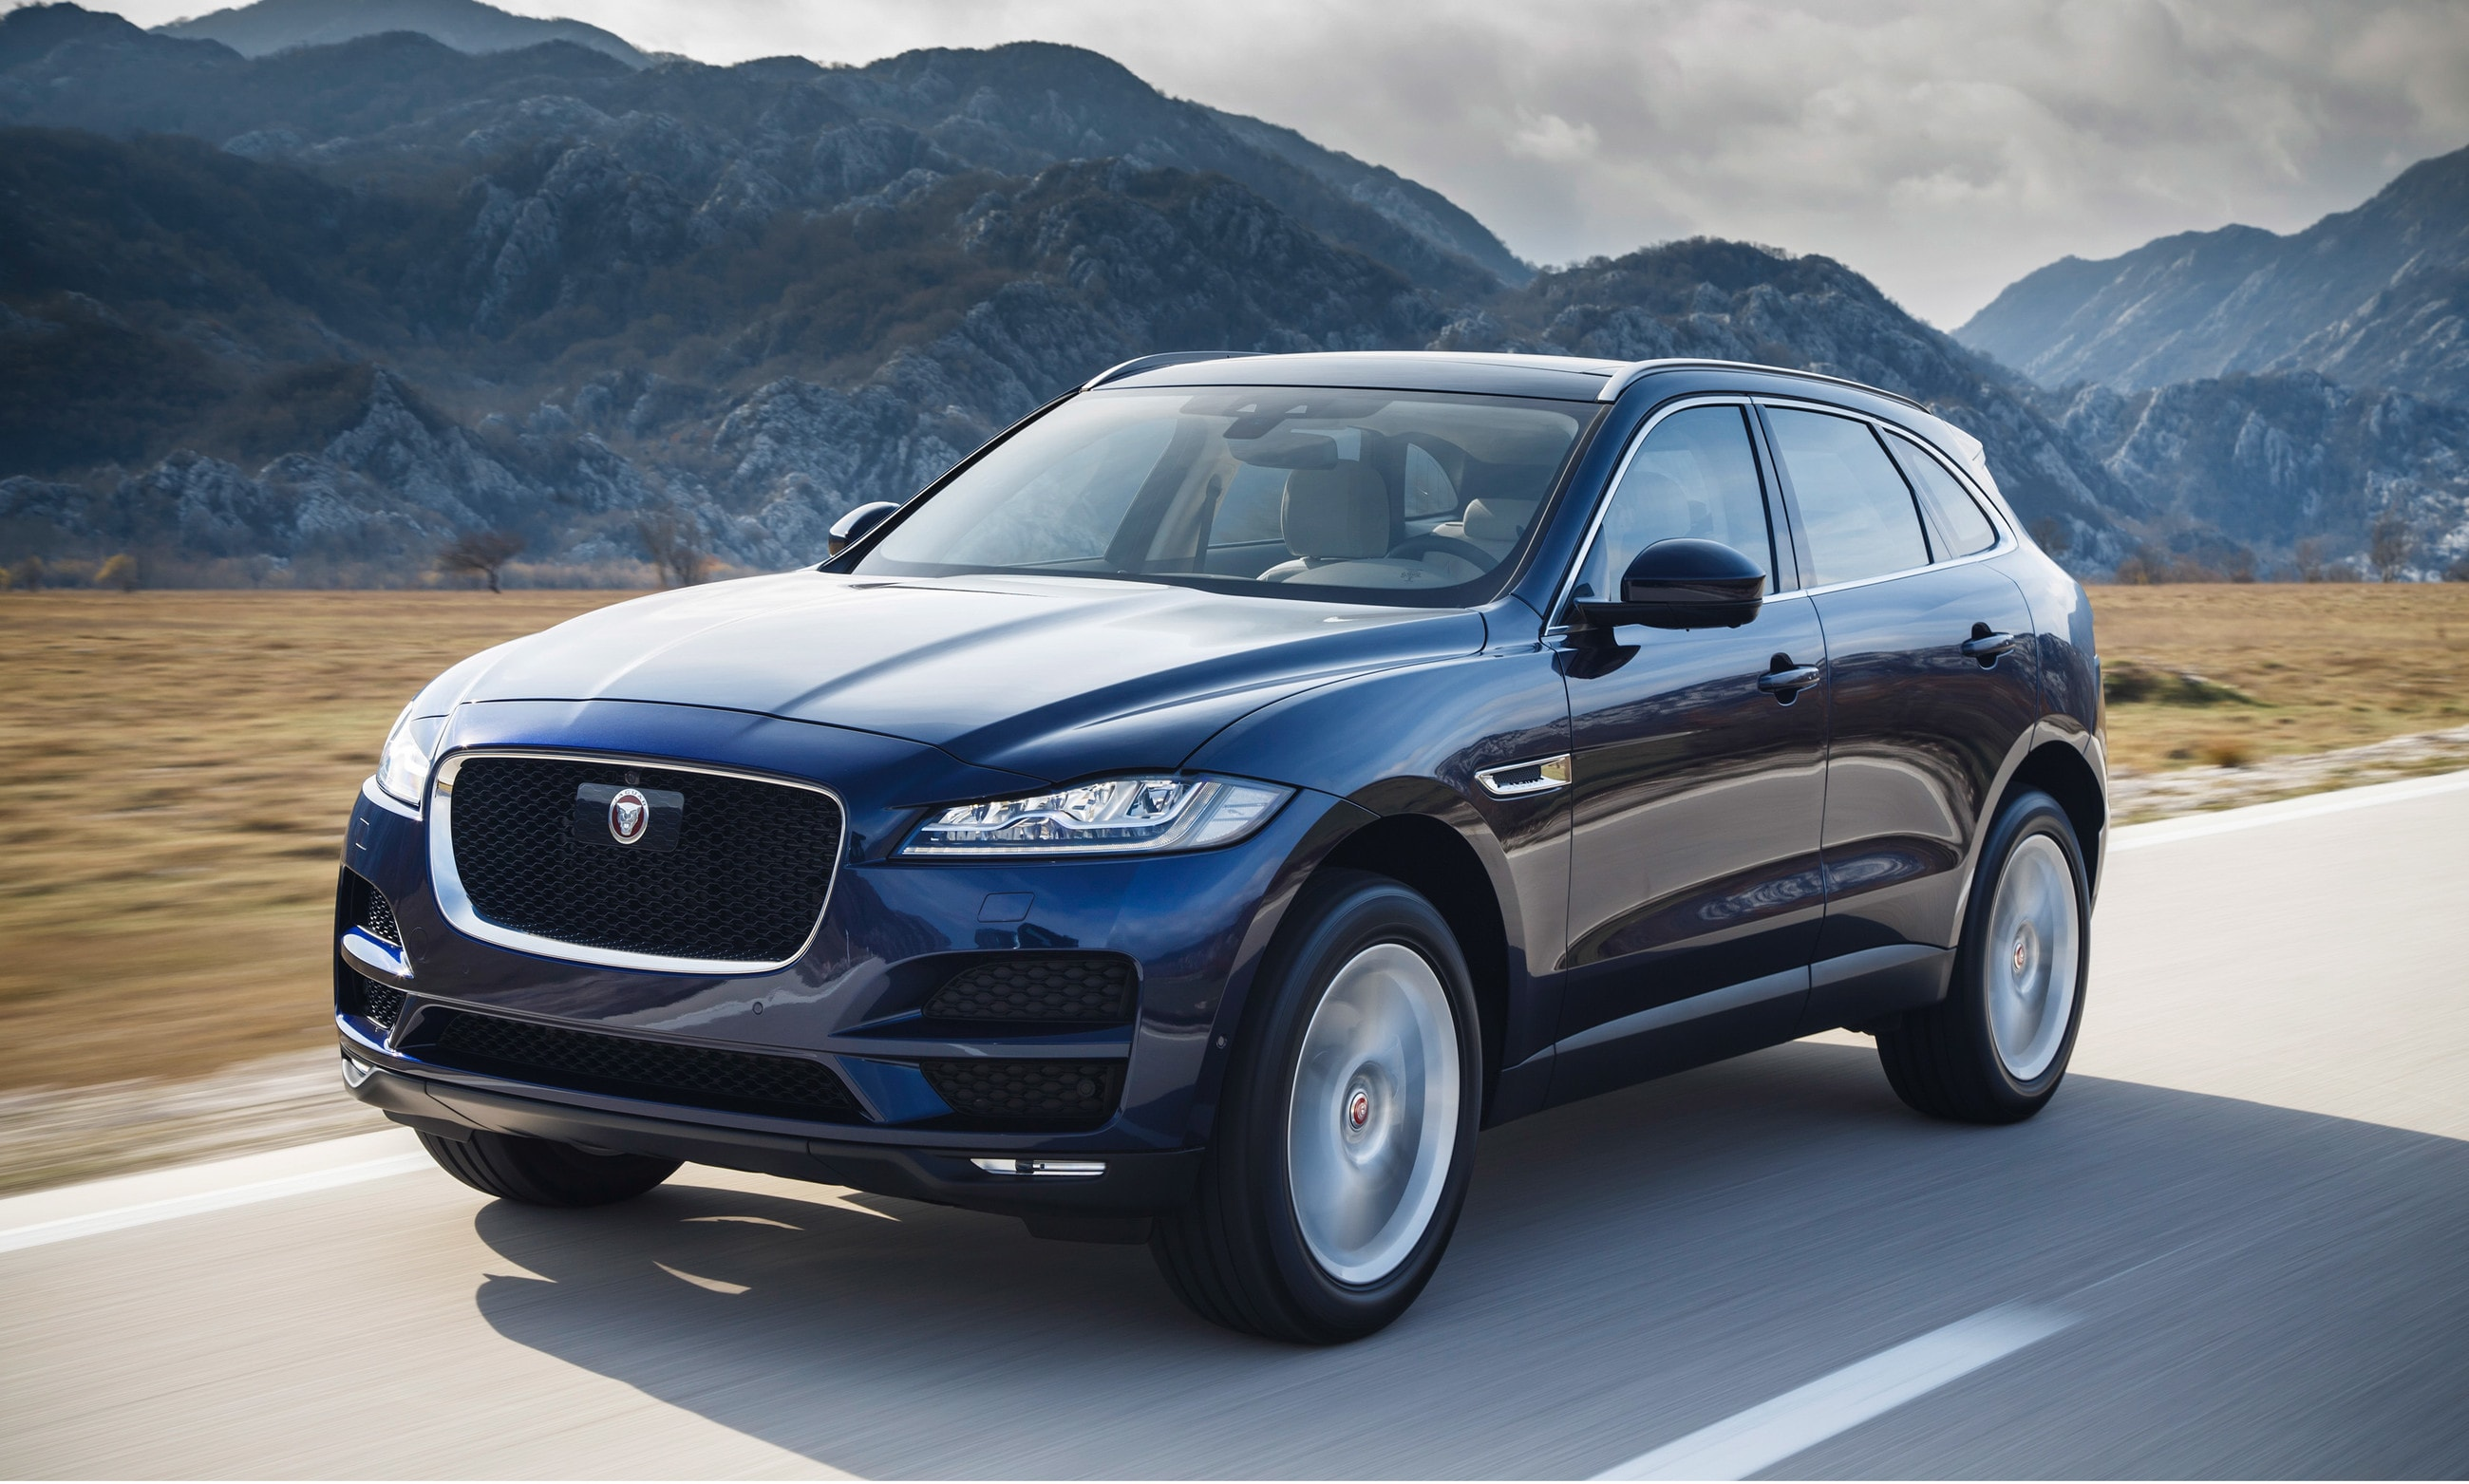 Jaguar F-Pace widescreen wallpapers